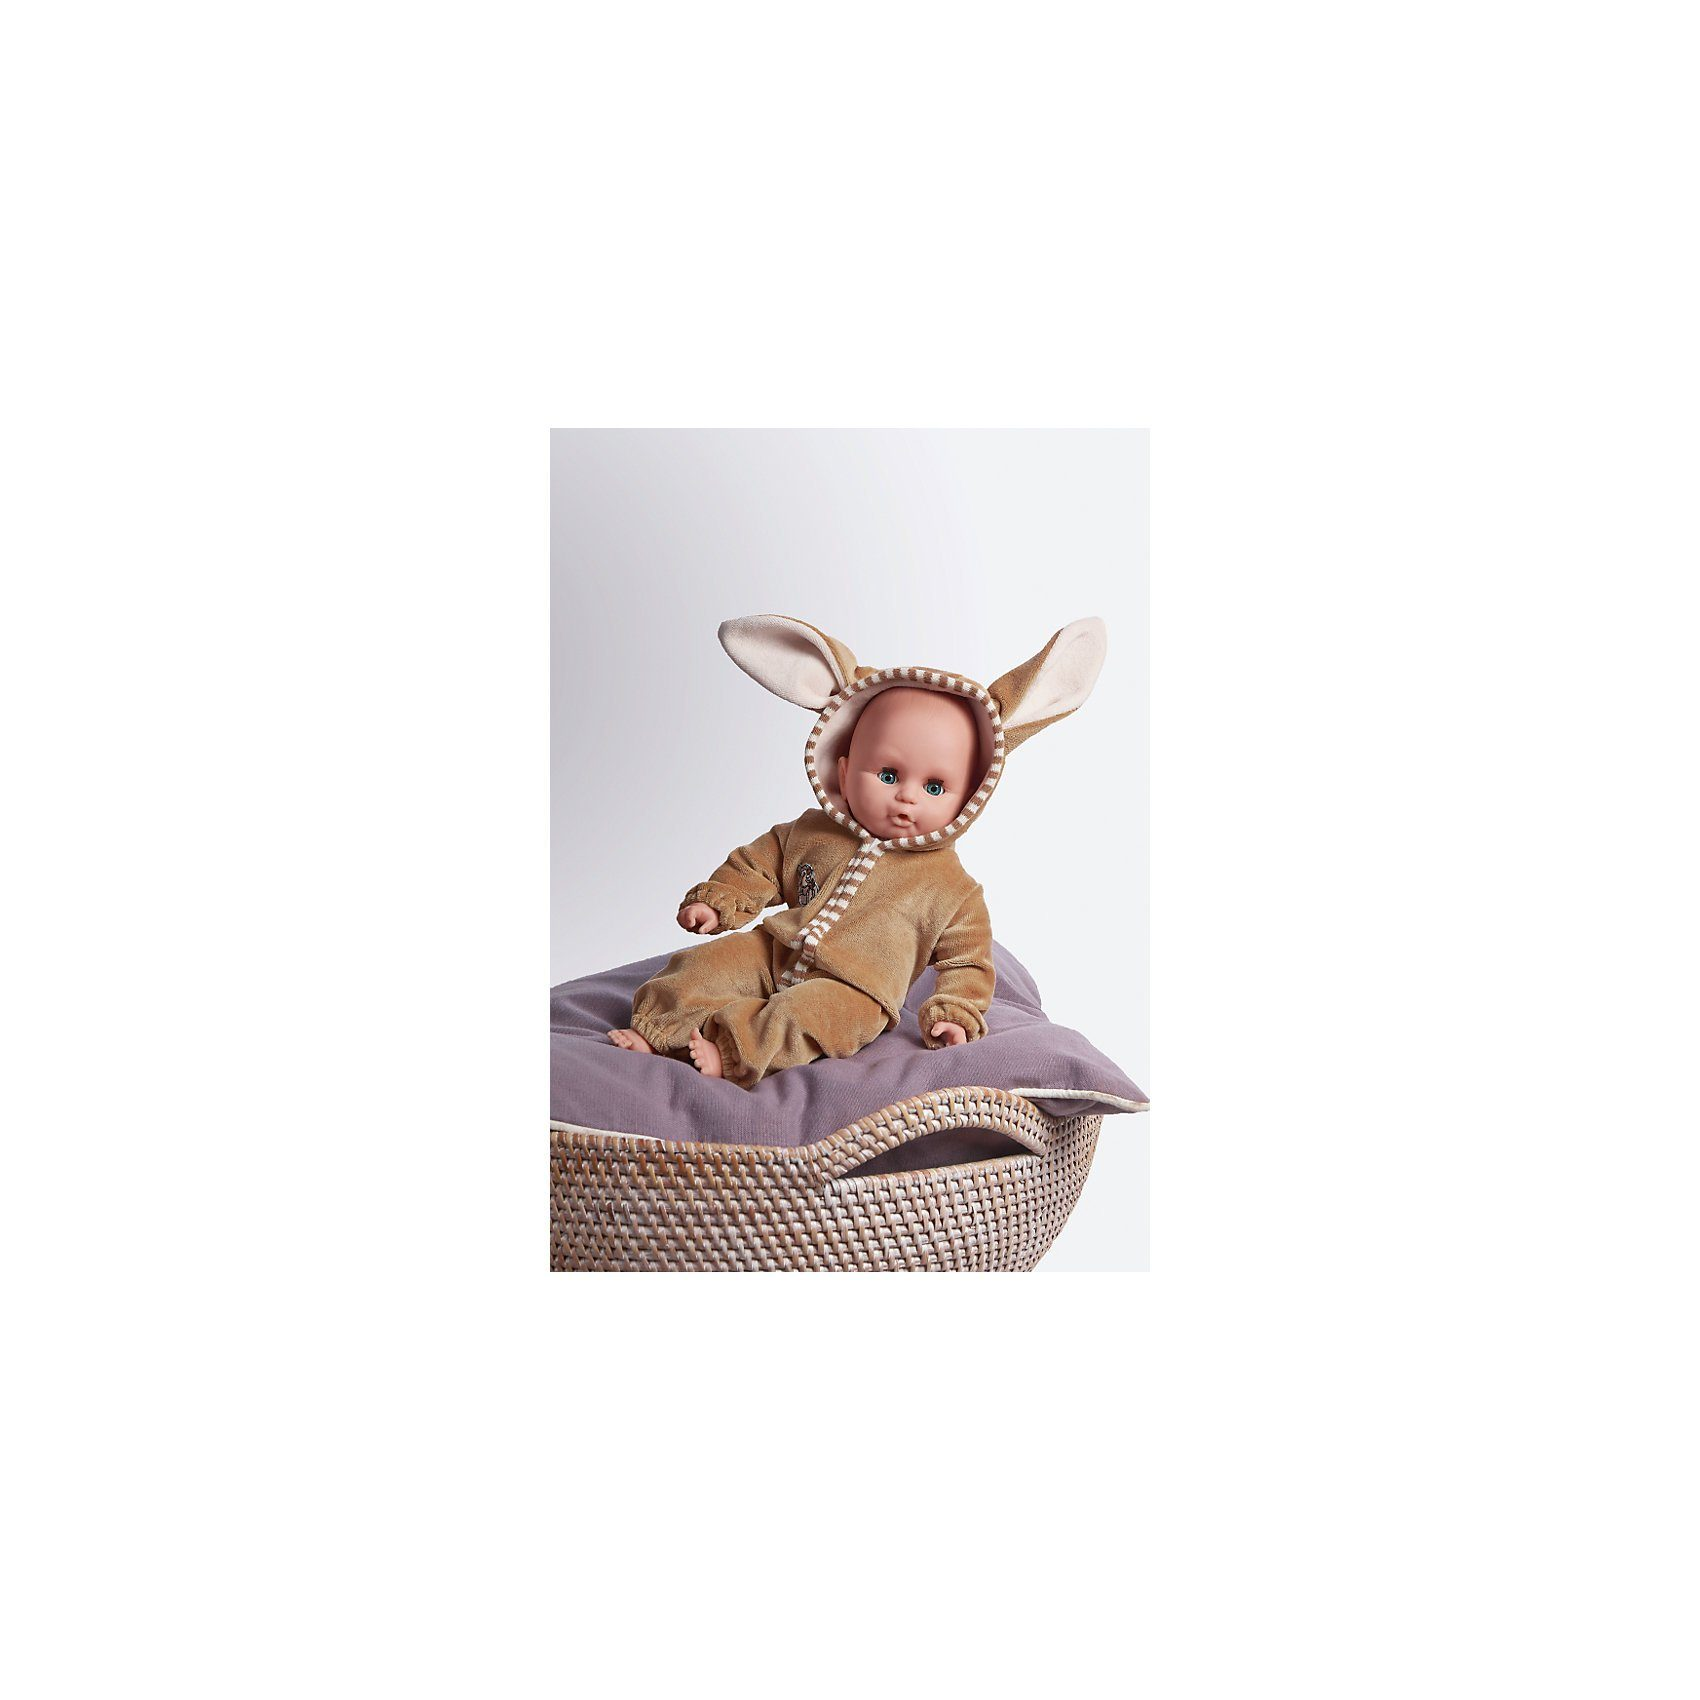 Emil Schwenk Babypuppe im Hasenoutfit, 32 cm